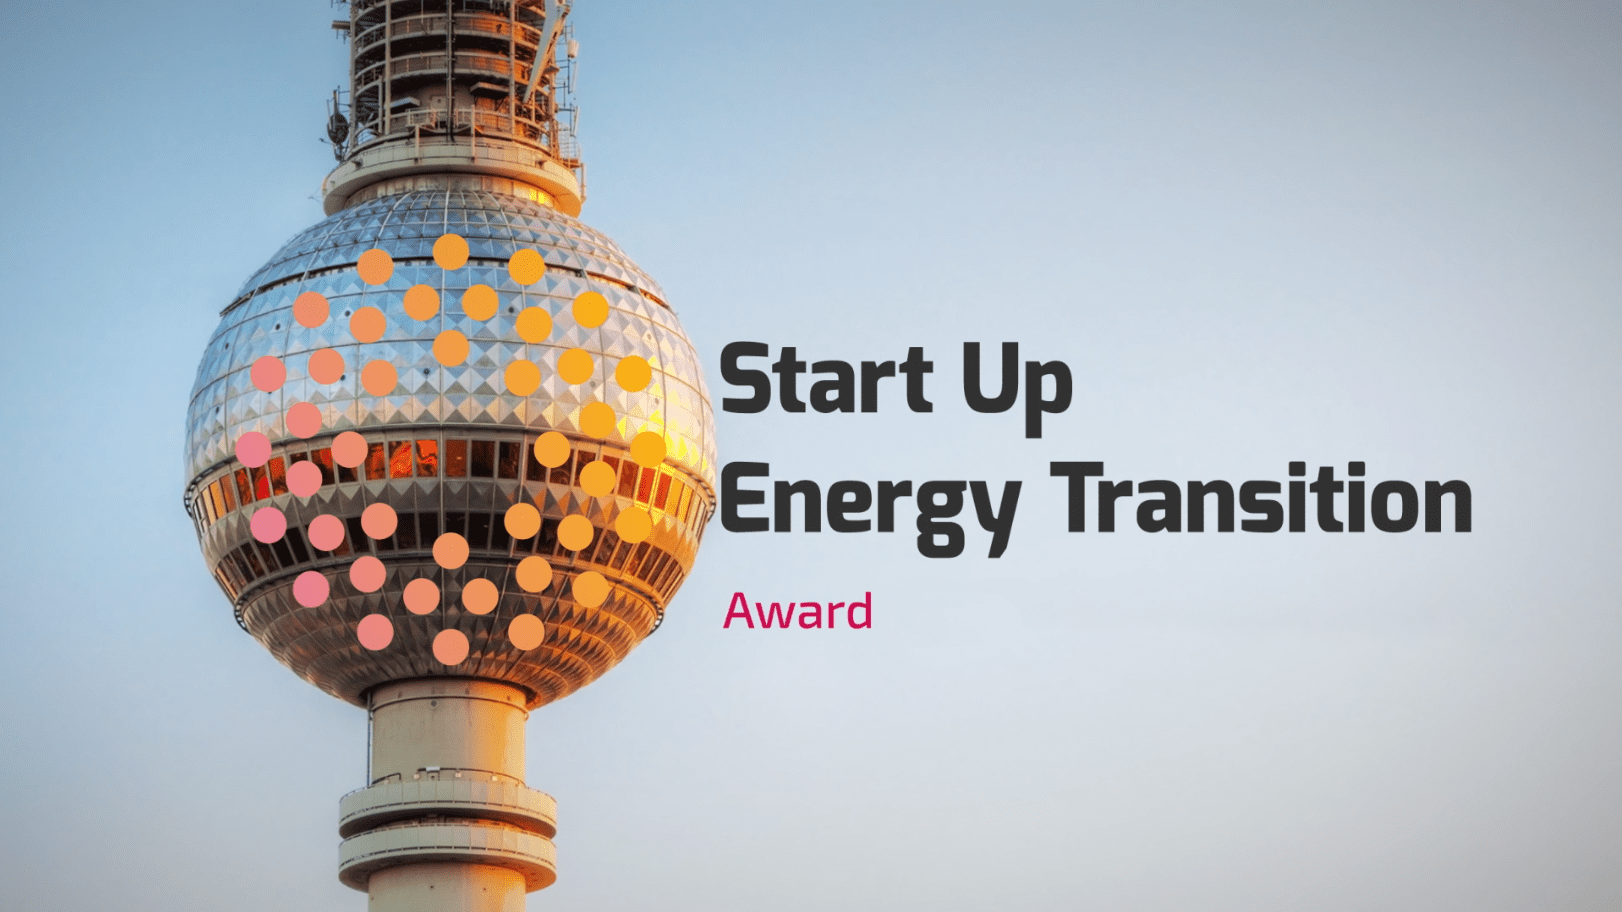 Launch Energy Shift Award 2019 global competitors for start-ups & & young business around the world (10000 Euros cash prize)